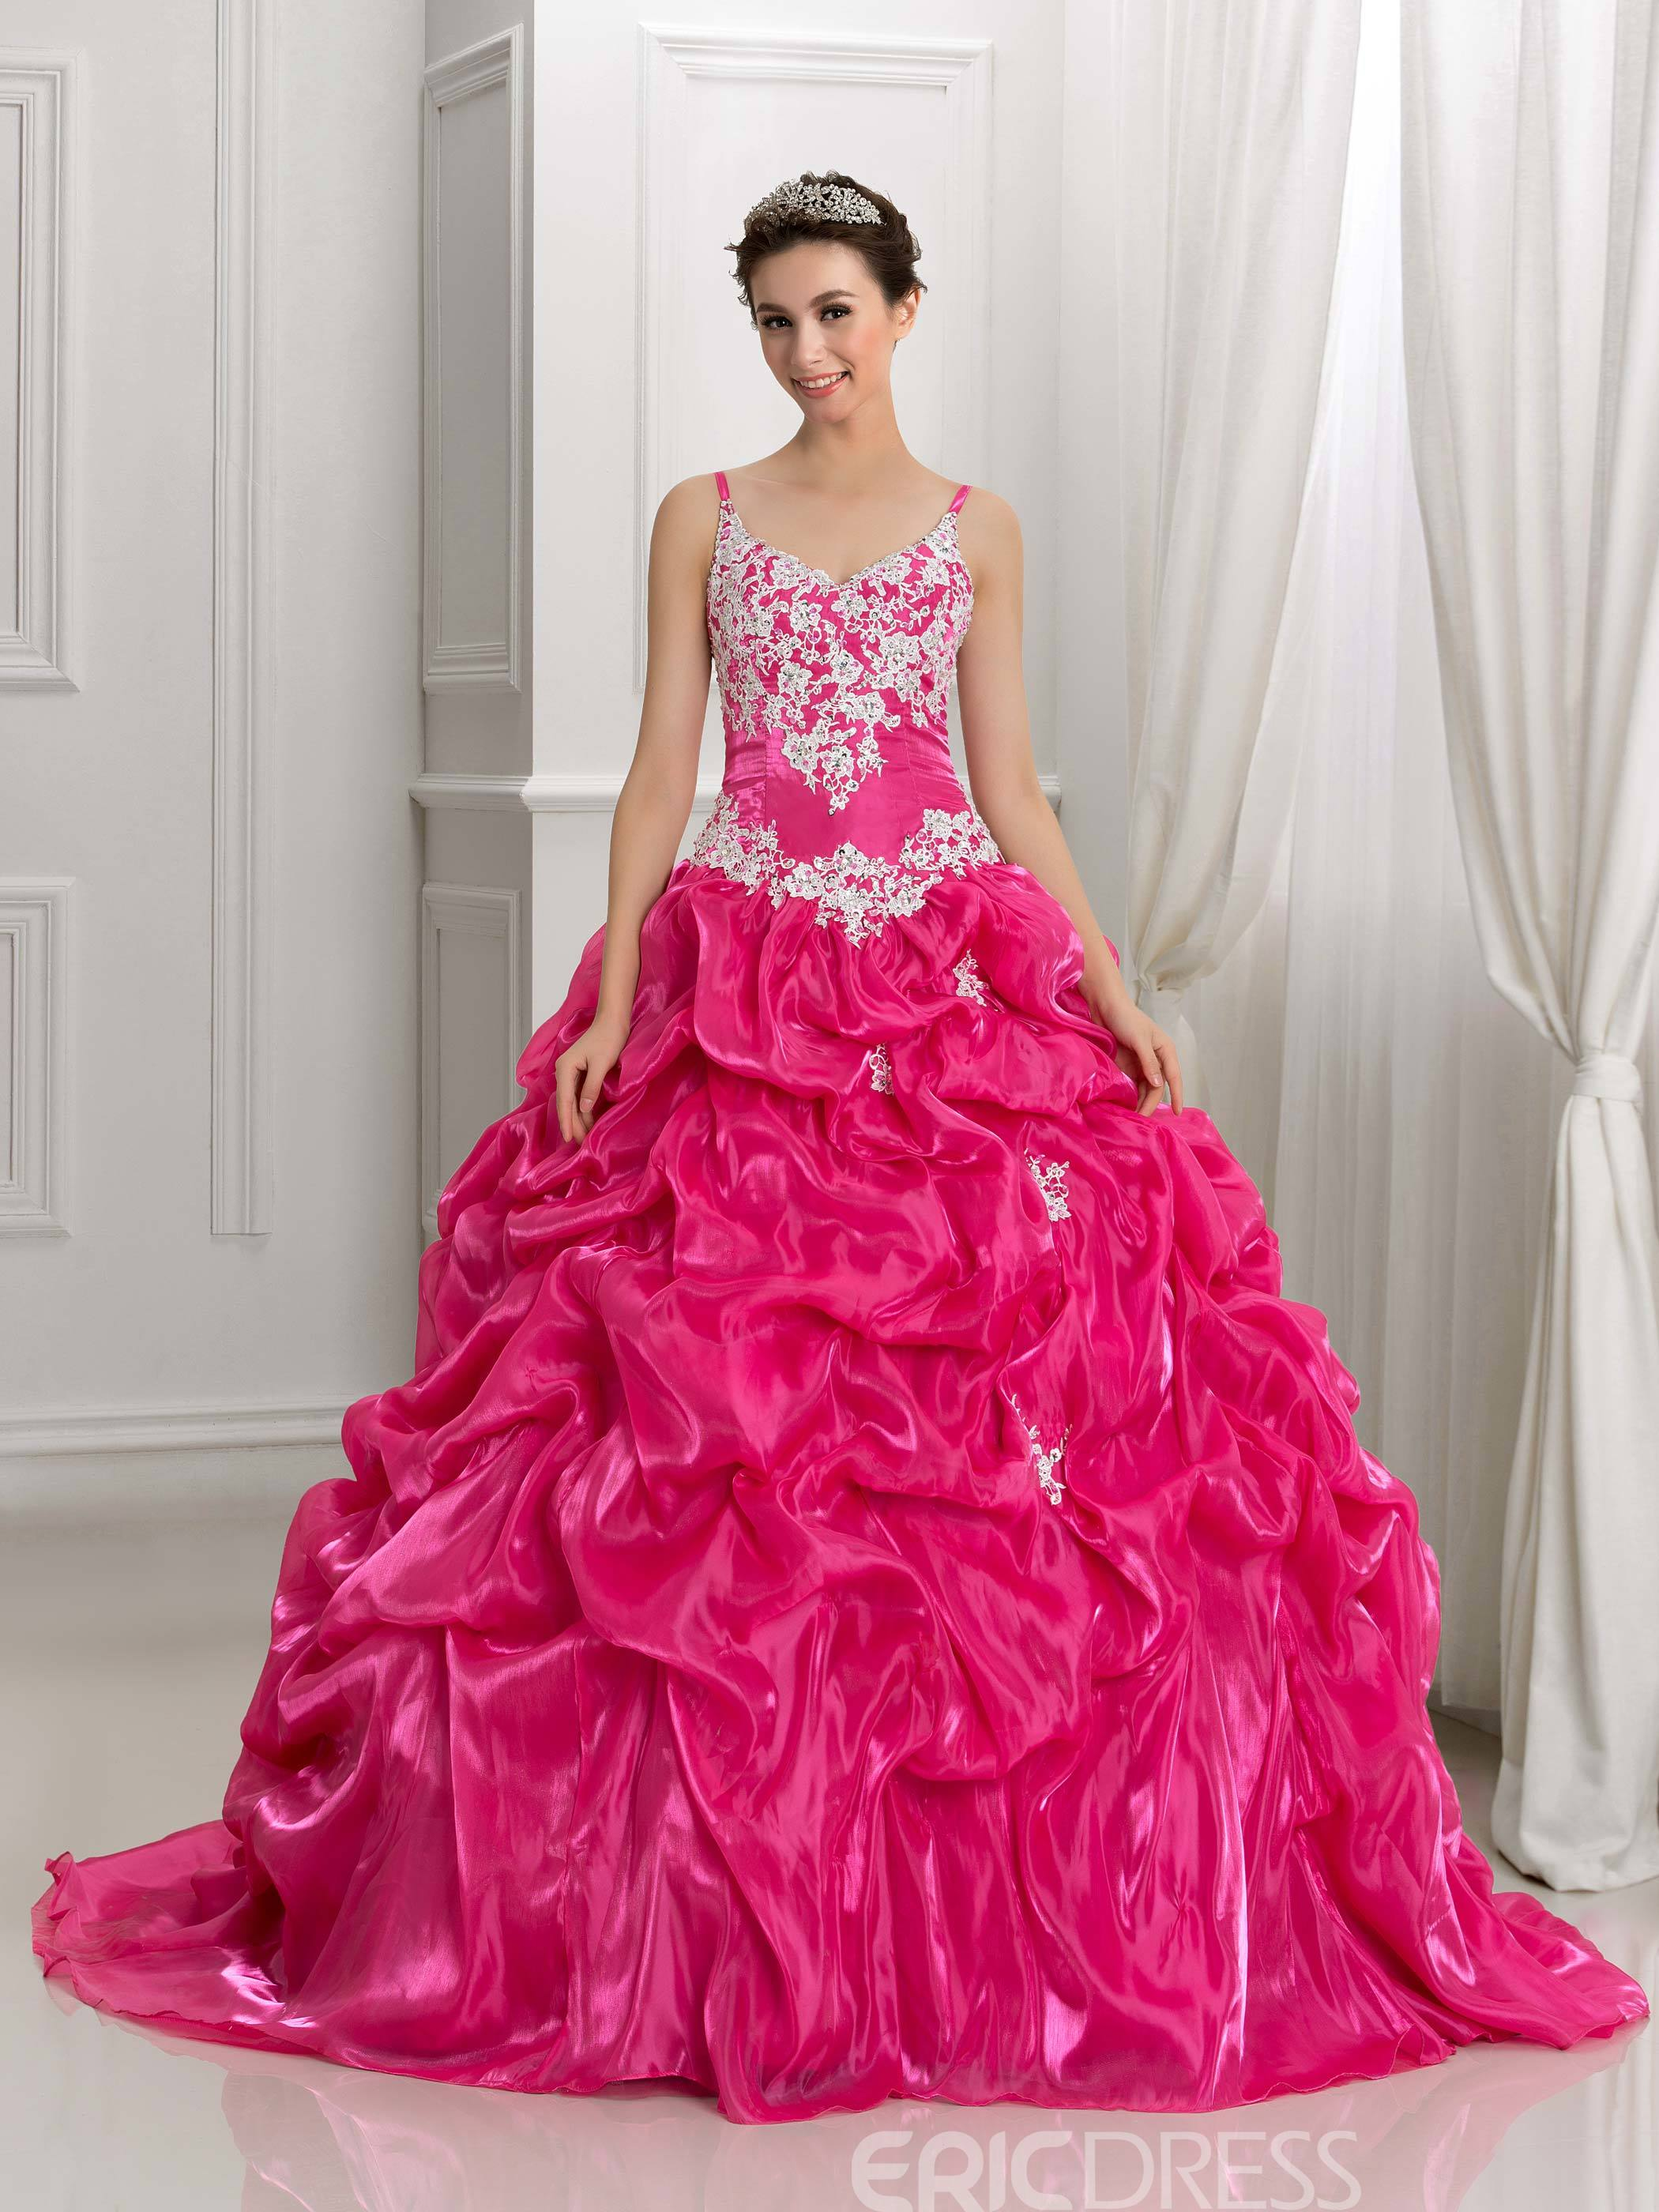 Ericdress Spaghetti Straps Appliques Pick-ups Ball Gown Quinceanera Dress